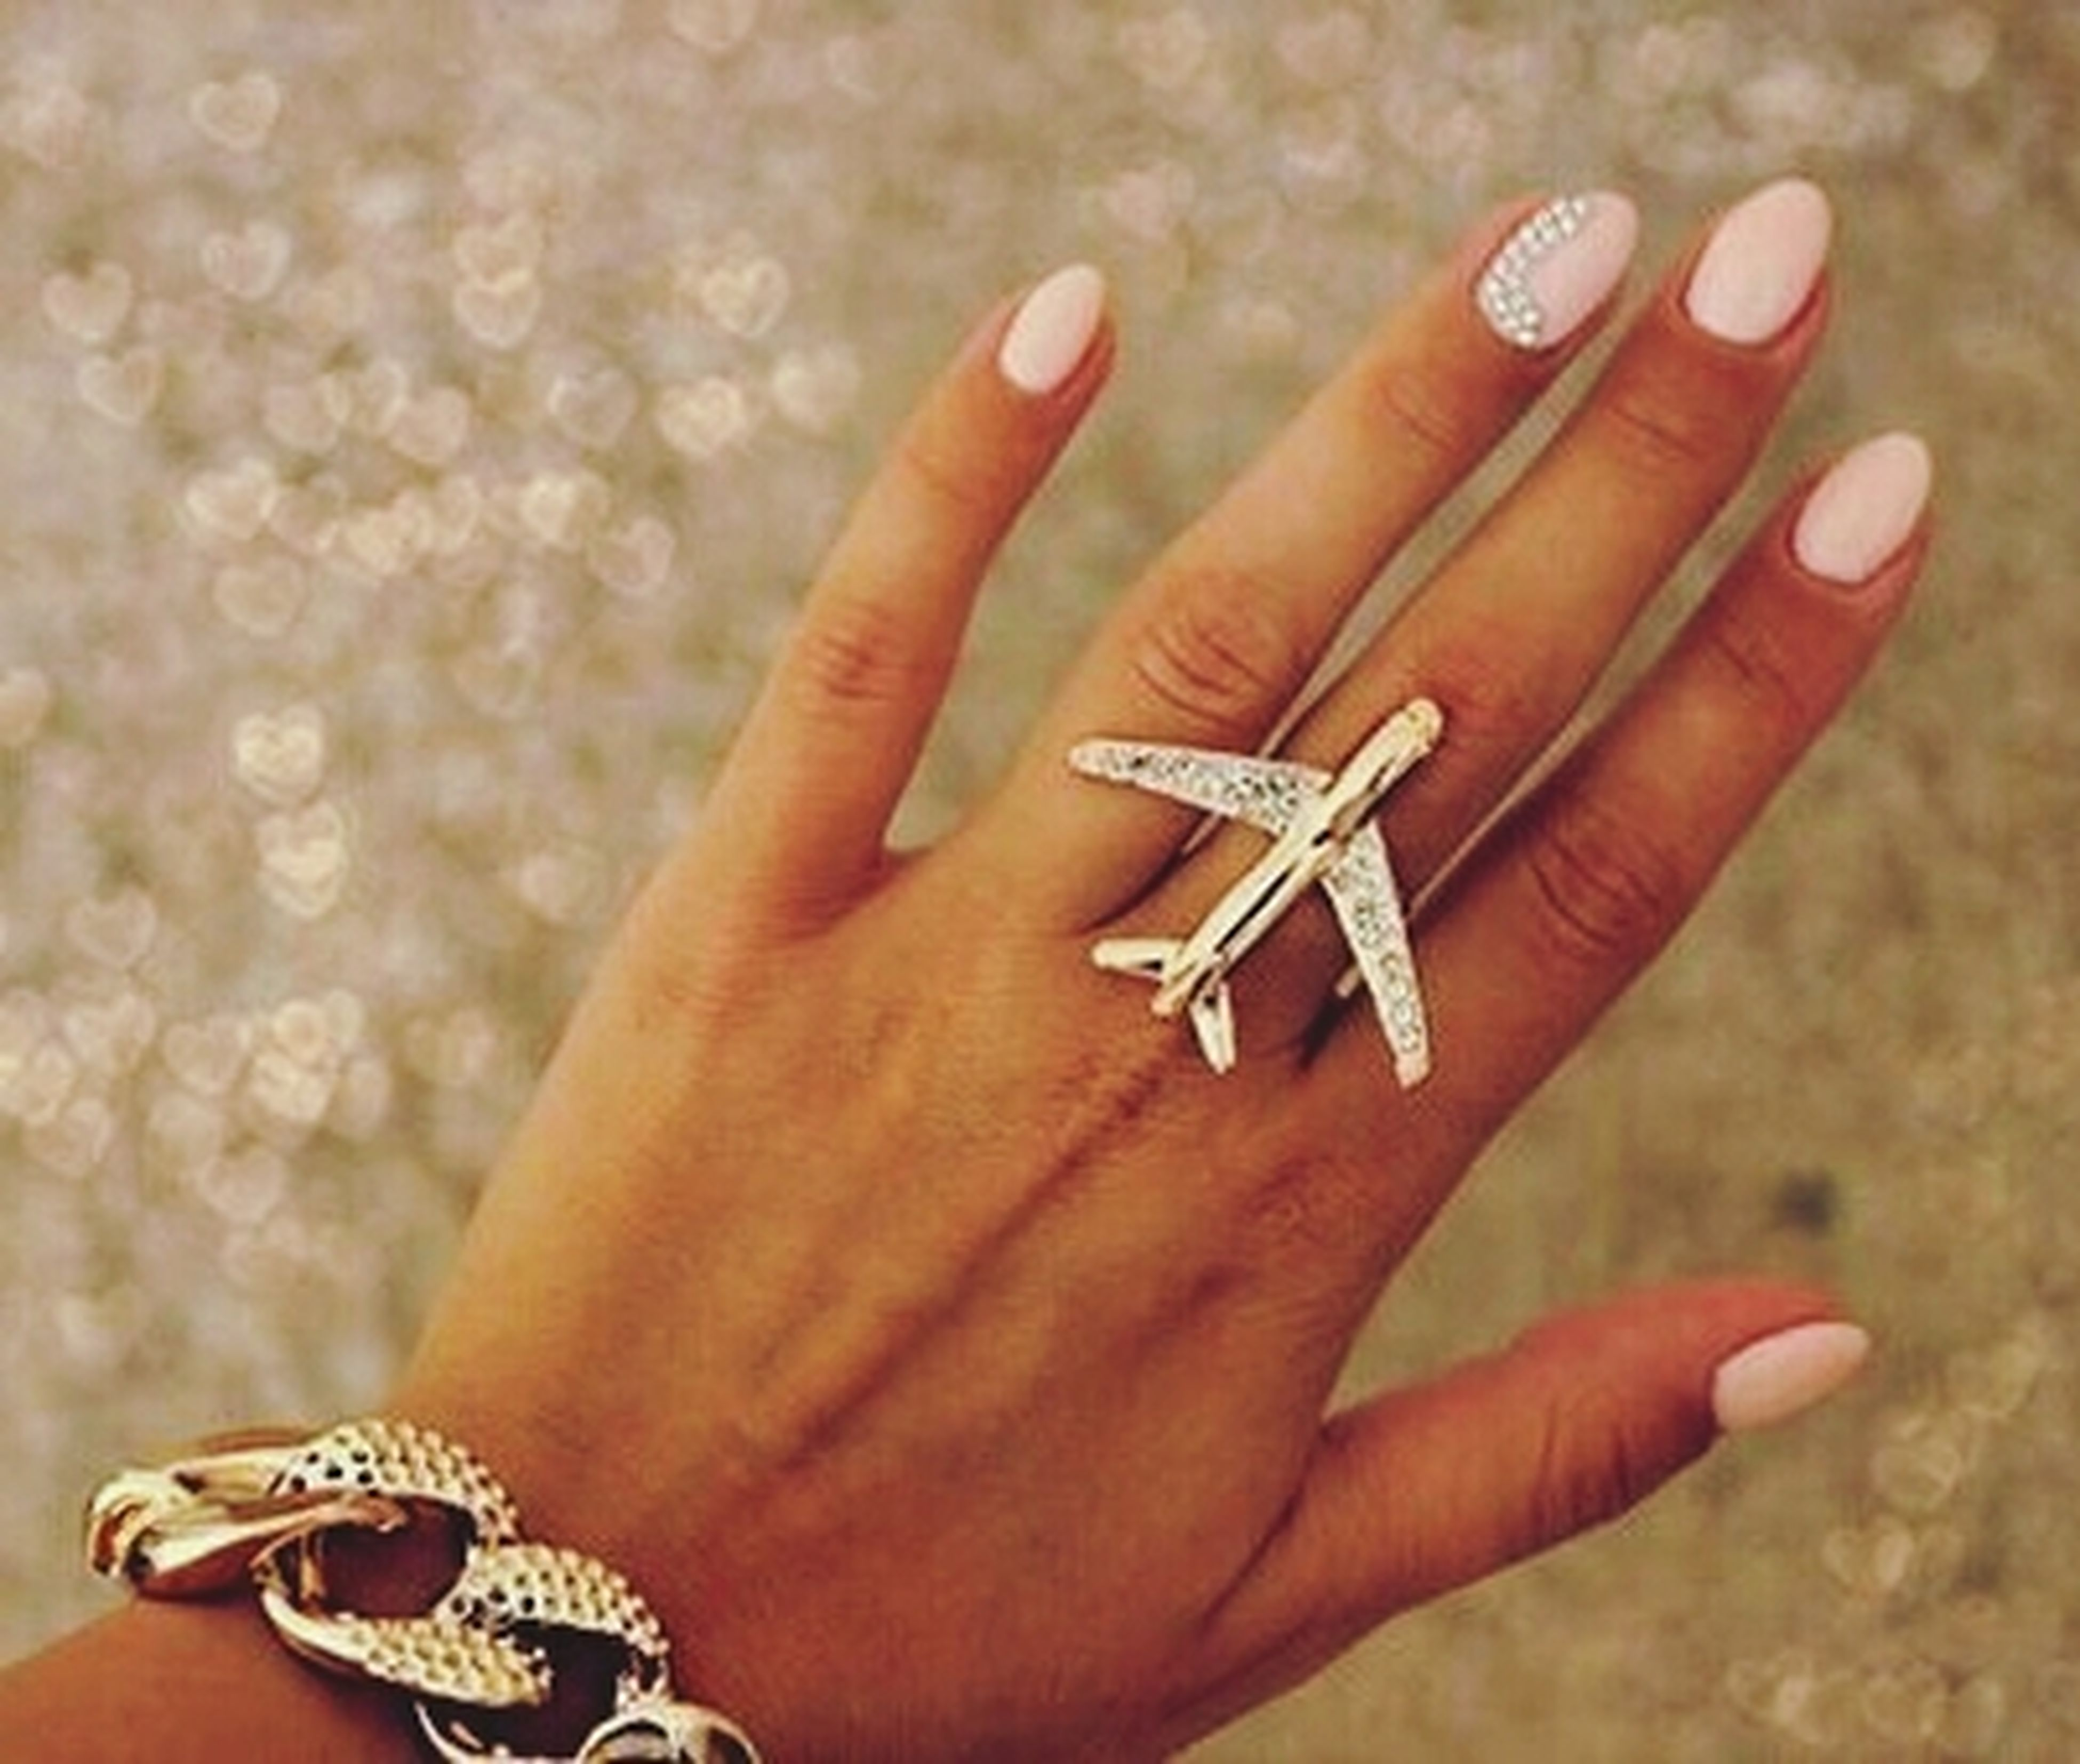 person, part of, human finger, holding, cropped, personal perspective, close-up, ring, unrecognizable person, lifestyles, focus on foreground, leisure activity, nail polish, showing, palm, bracelet